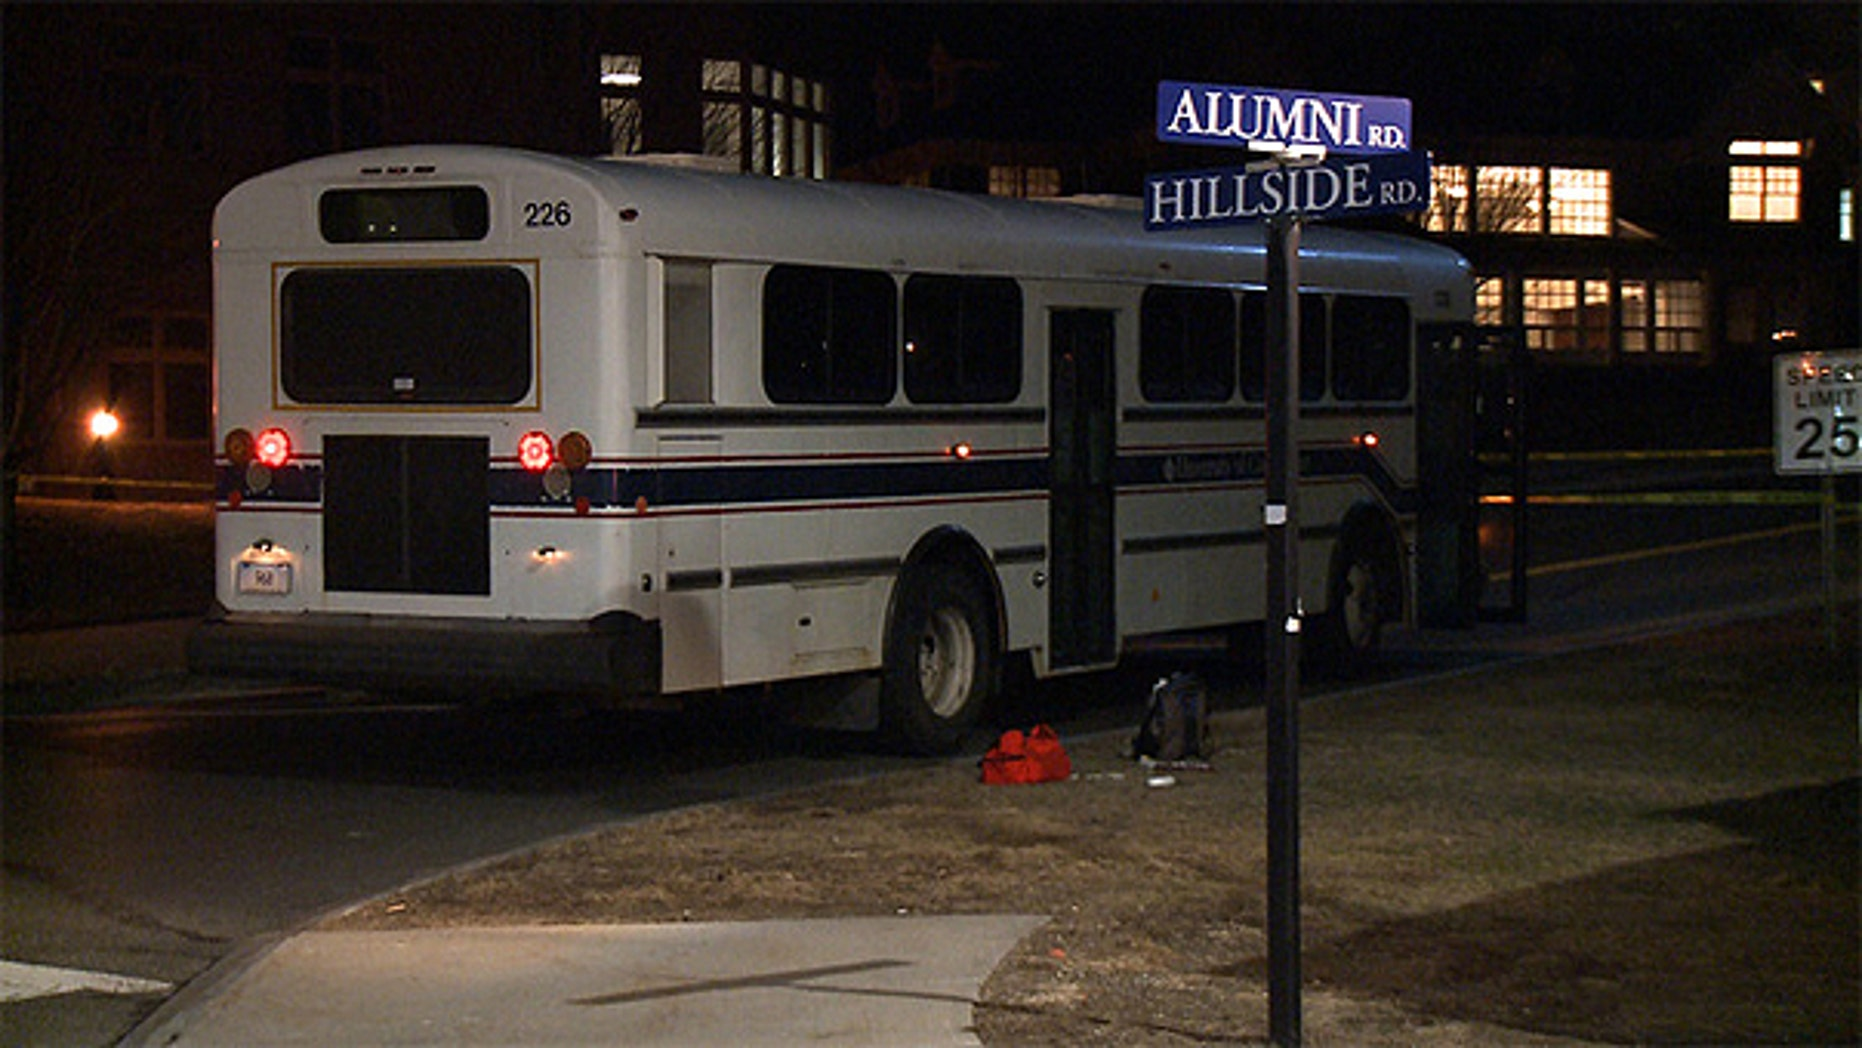 March 22: A male pedestrian was struck by a campus shuttle bus at the intersection of Hillside and Alumni roads, near the North Parking Garage, UConn police said.